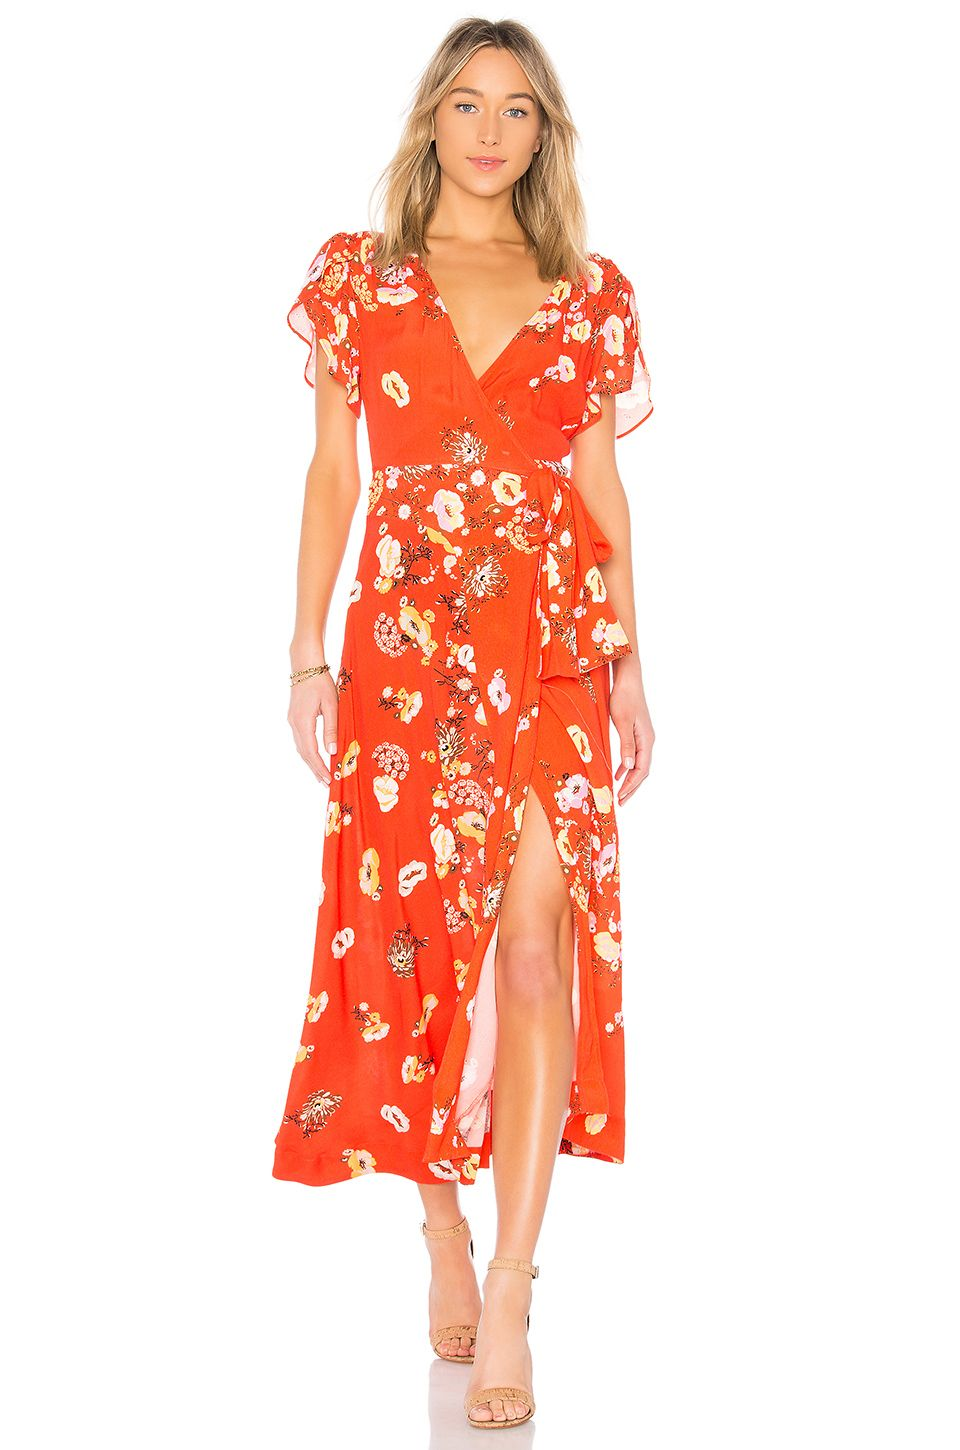 e5868a892490bf Free People Gorgeous Jess Wrap Dress in Red Combo perfect guest outfit for  a summer wedding! #weddingguest #dress #floraldress #summerwedding  #reddress ...